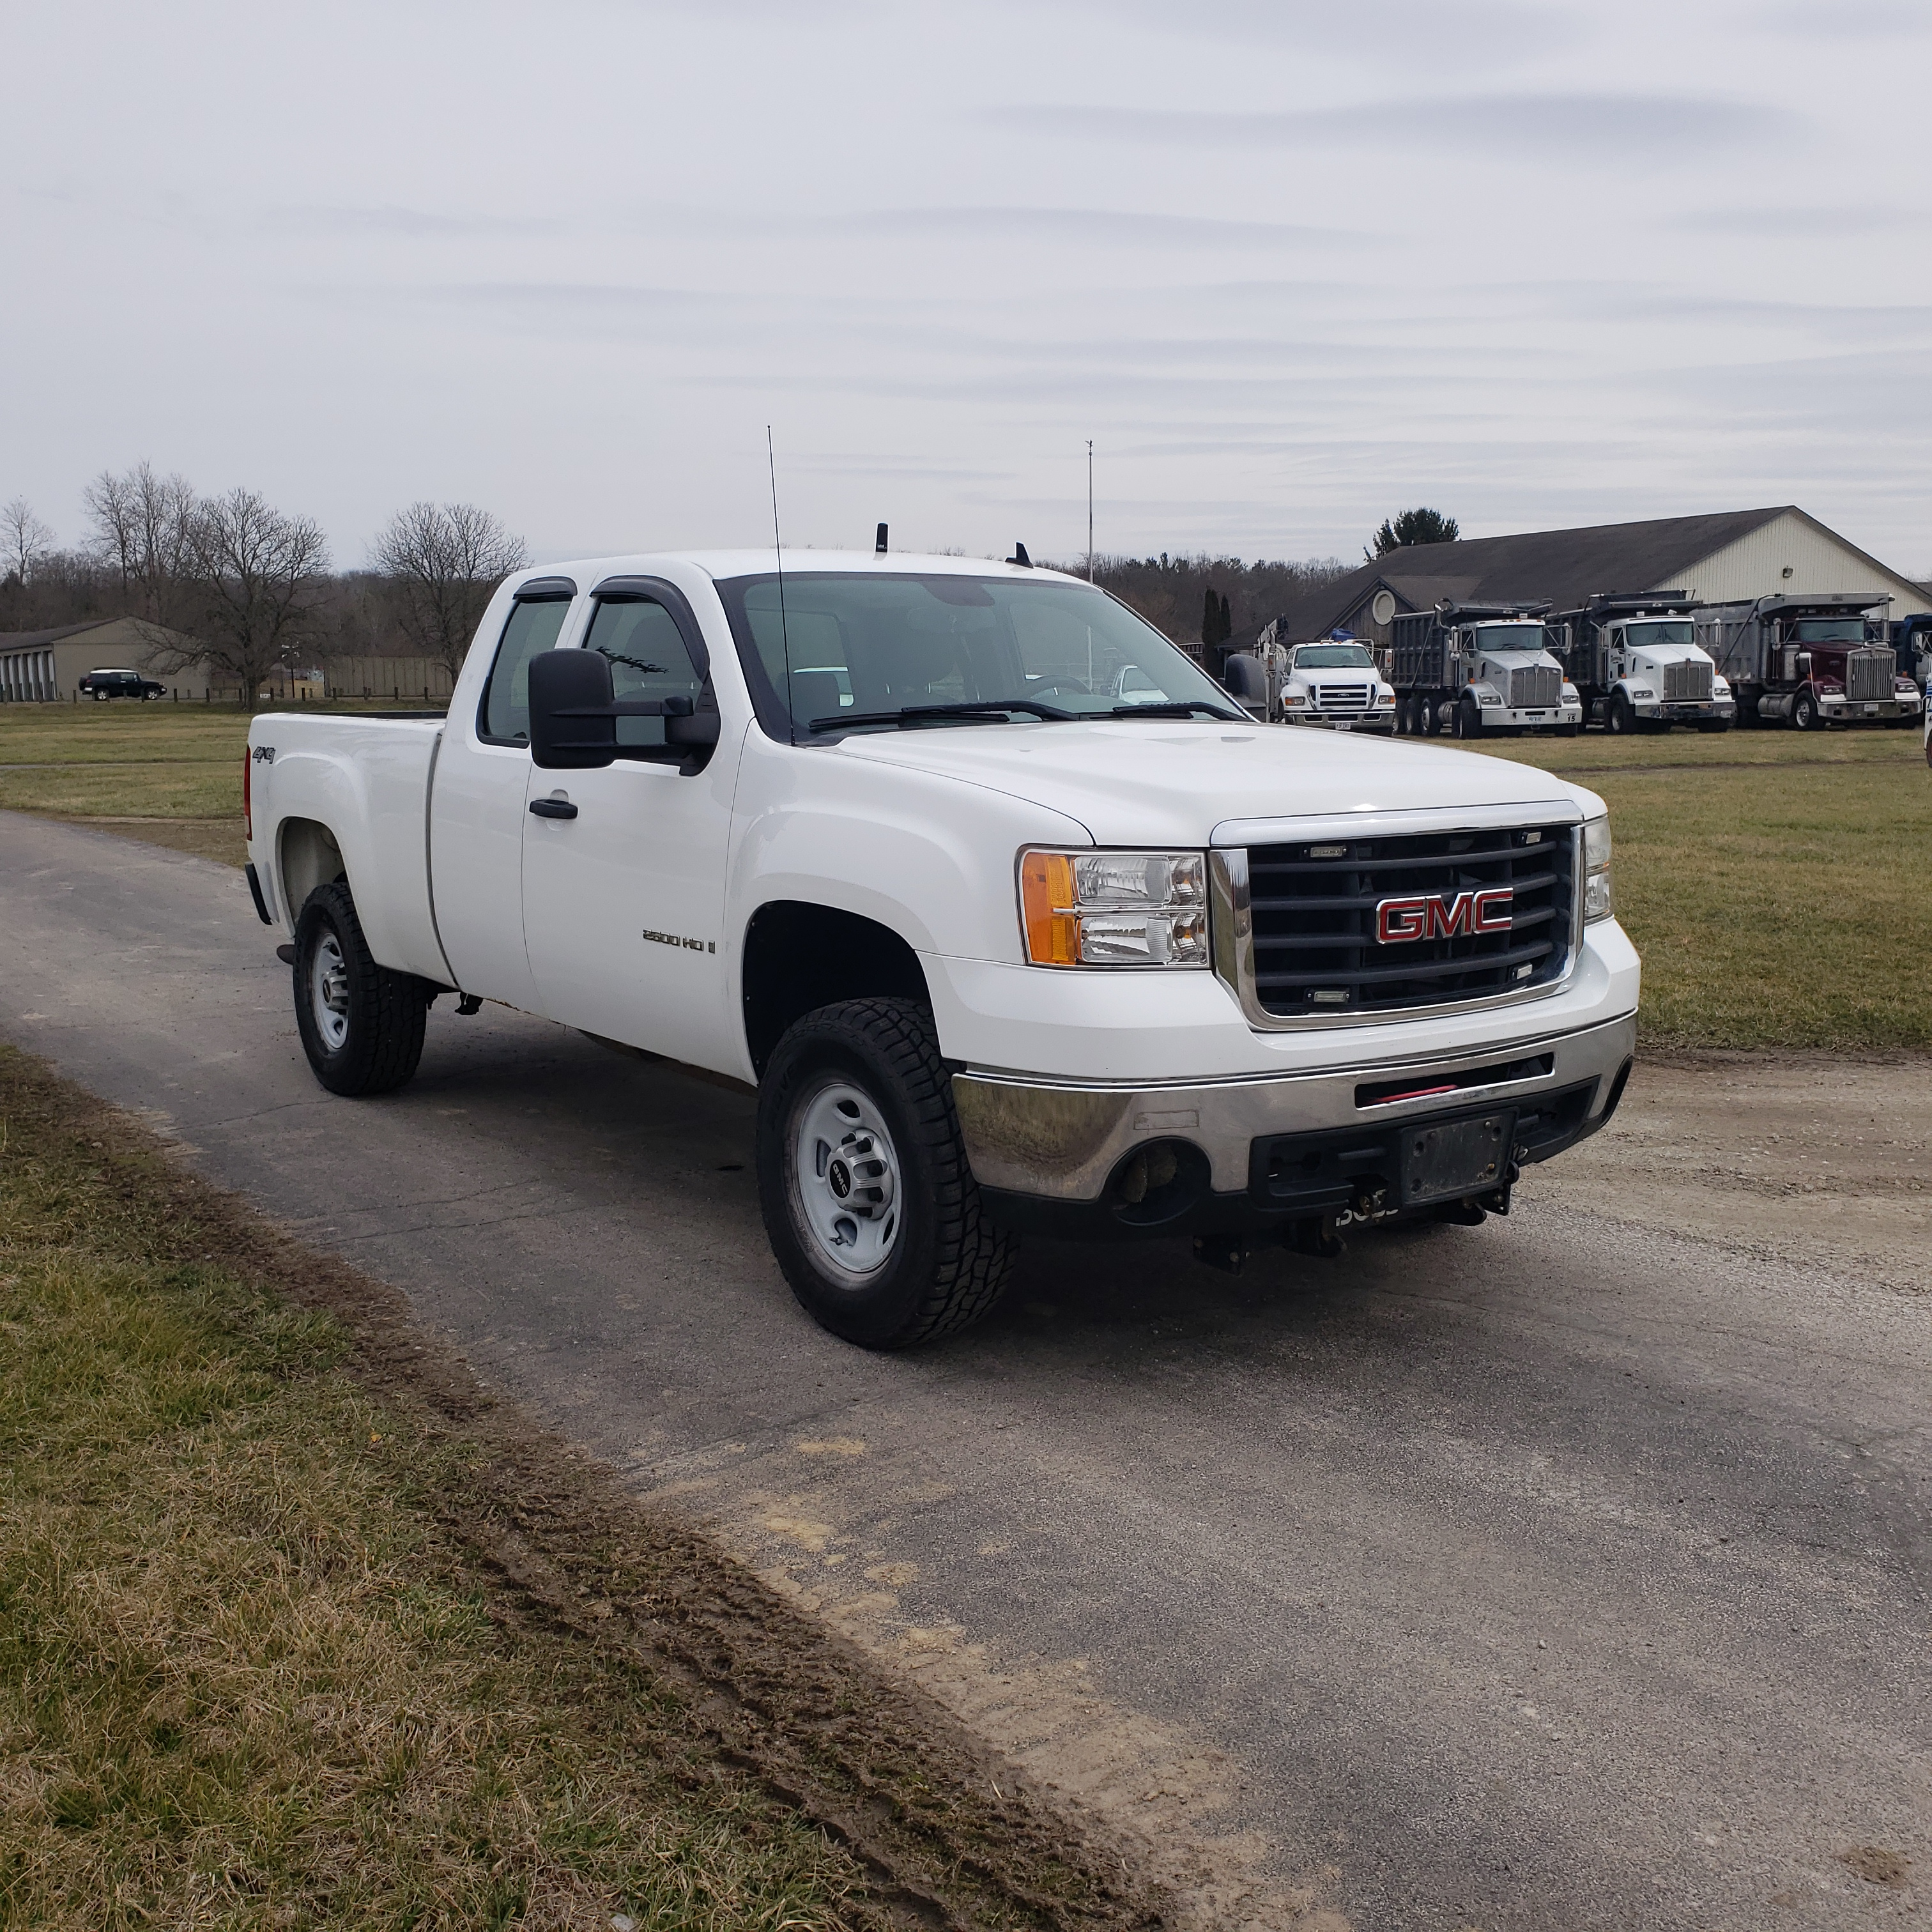 Lot 16 - 2009 GMC 2500 HD, 4x4, 8' Bed, 4 x 4, 6.0 Liter Gasoline Engine (CNG for first 70,000 miles) Auto